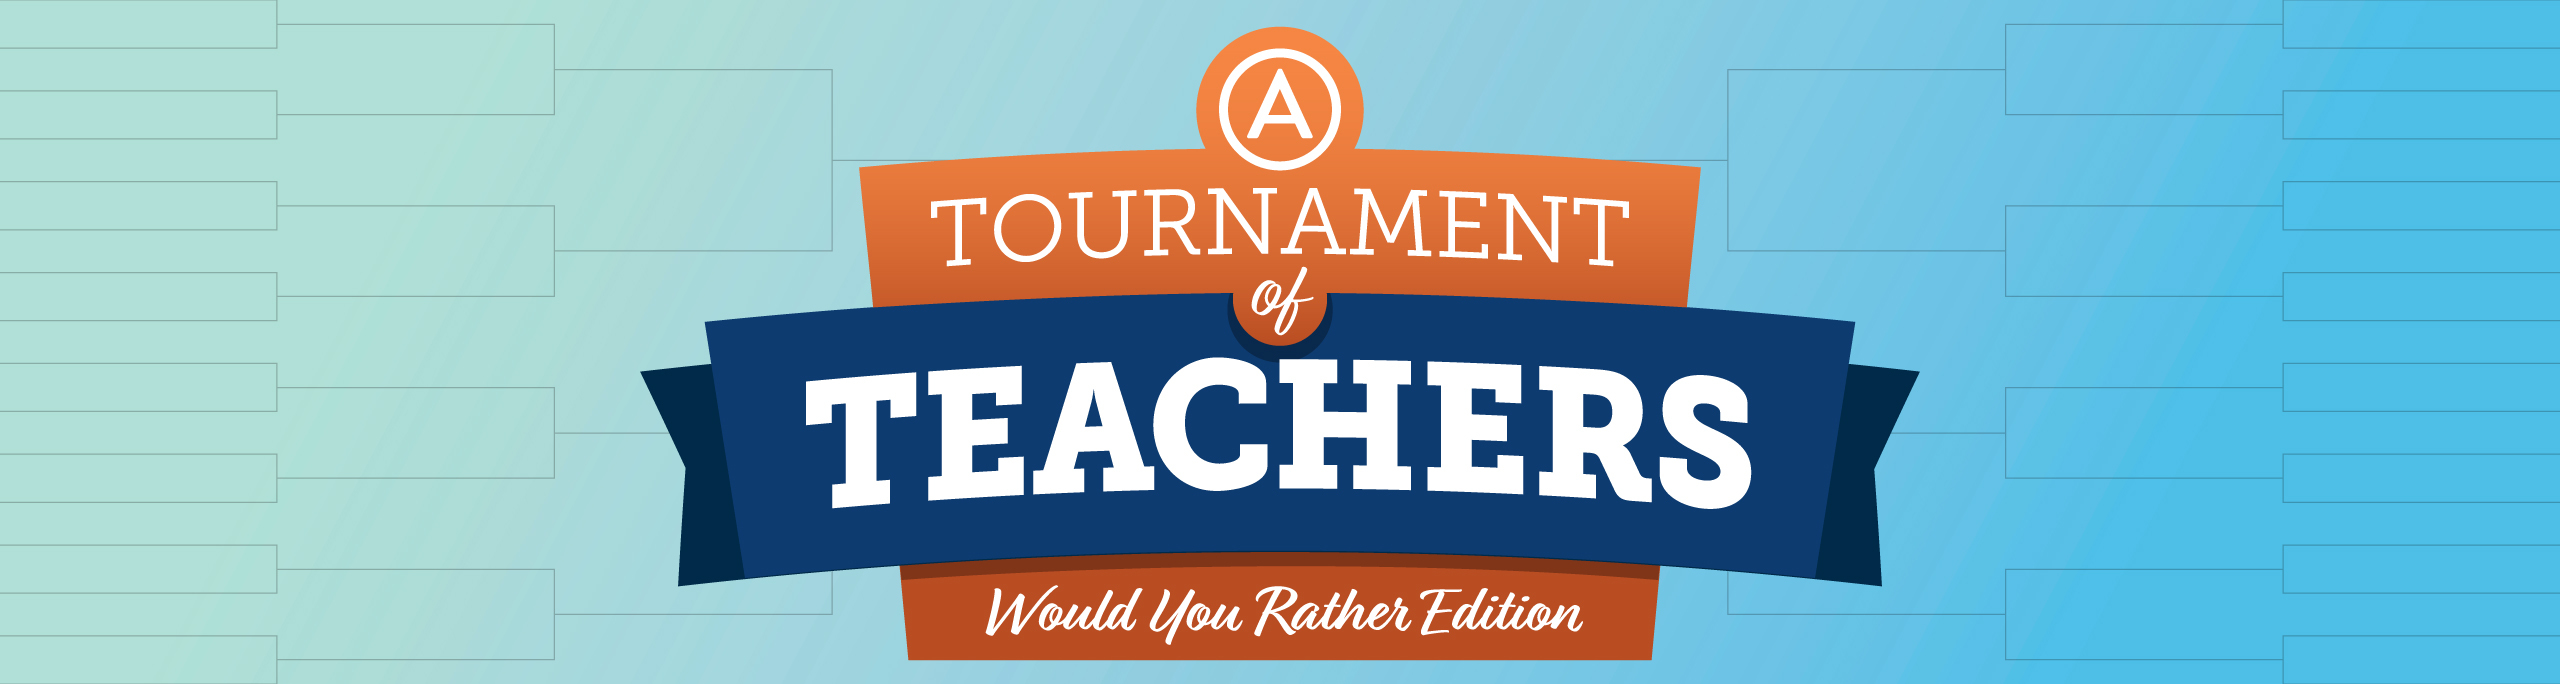 Advancement Courses' Tournament of Teachers